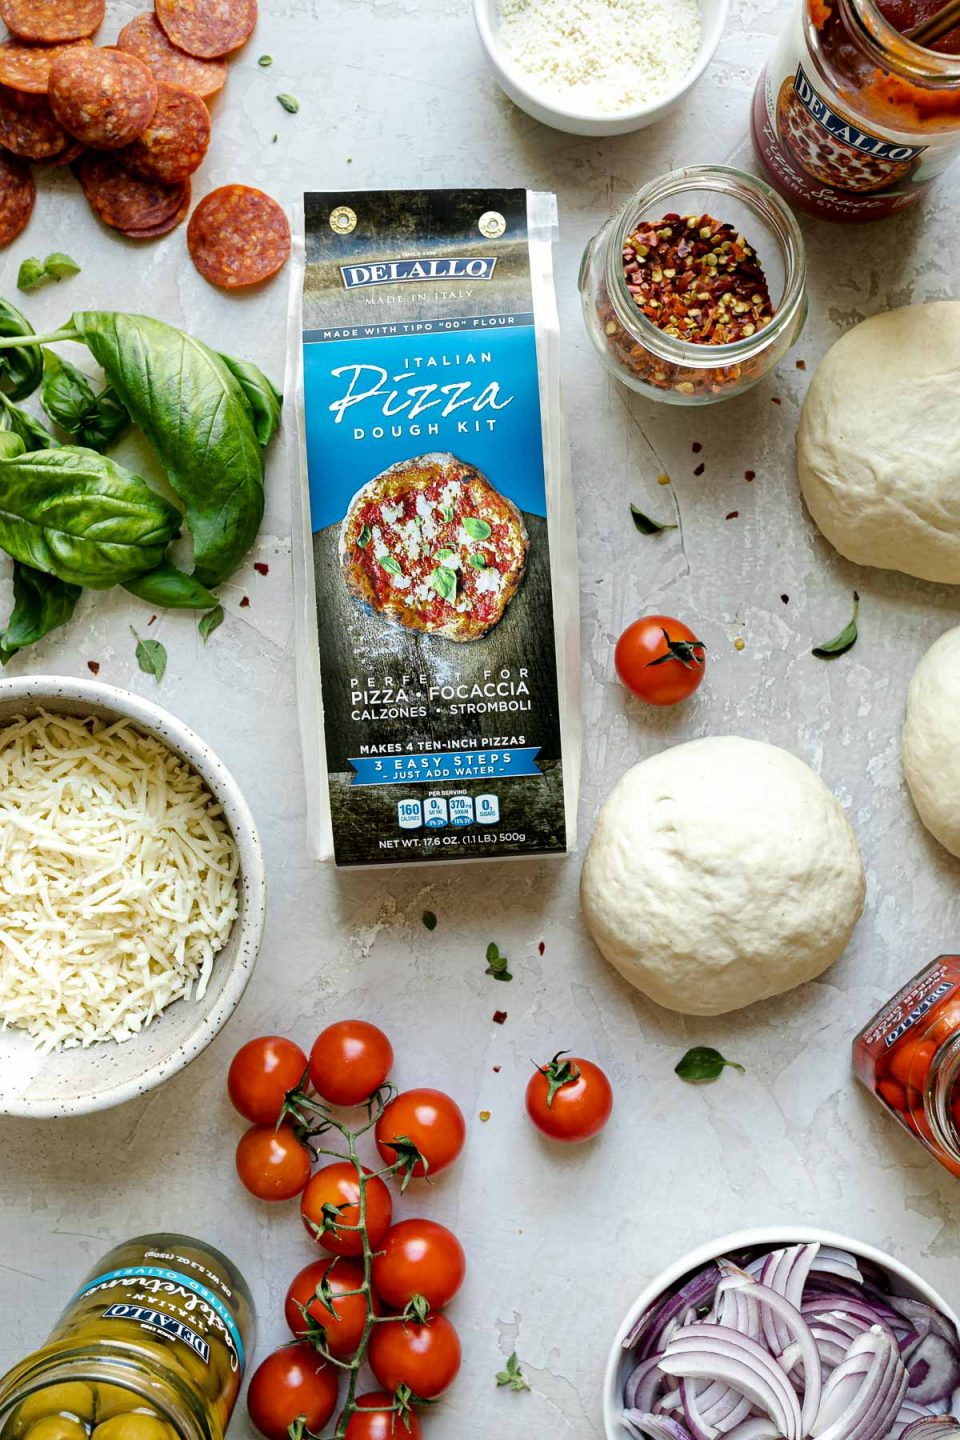 Grilled Pizza Night toppings arranged on a creamy cement surface – DeLallo pizza dough kit, pizza dough balls, pepperoni, pizza sauce, tomatoes, cheese, sliced onion, castelvetrano olives, tomatoes, etc.